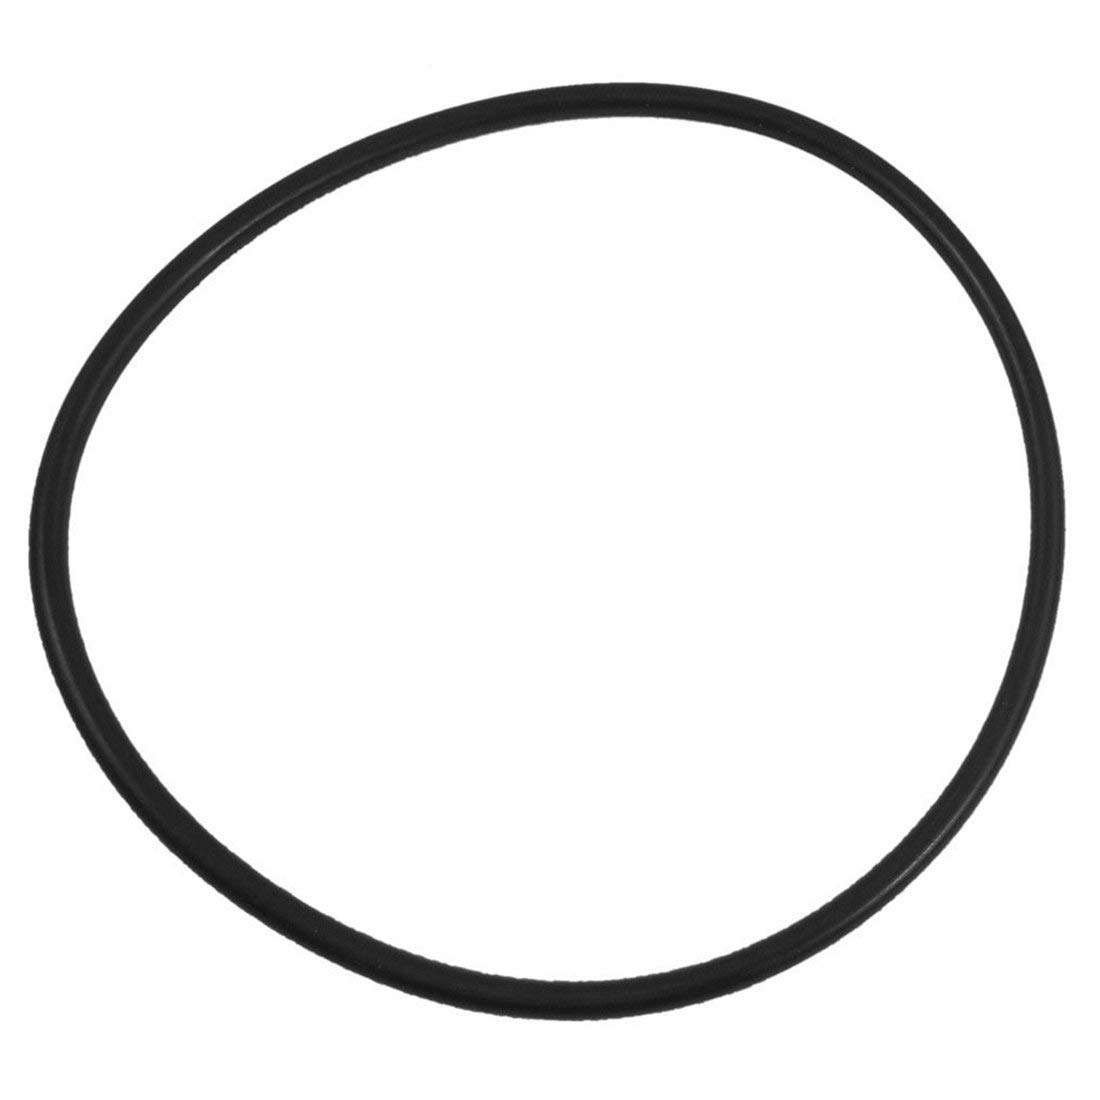 Yevison 130mm x 5mm Rubber O Ring Oil Filter Oil Seal Sealing Washers Black Durable and Useful by Yevison